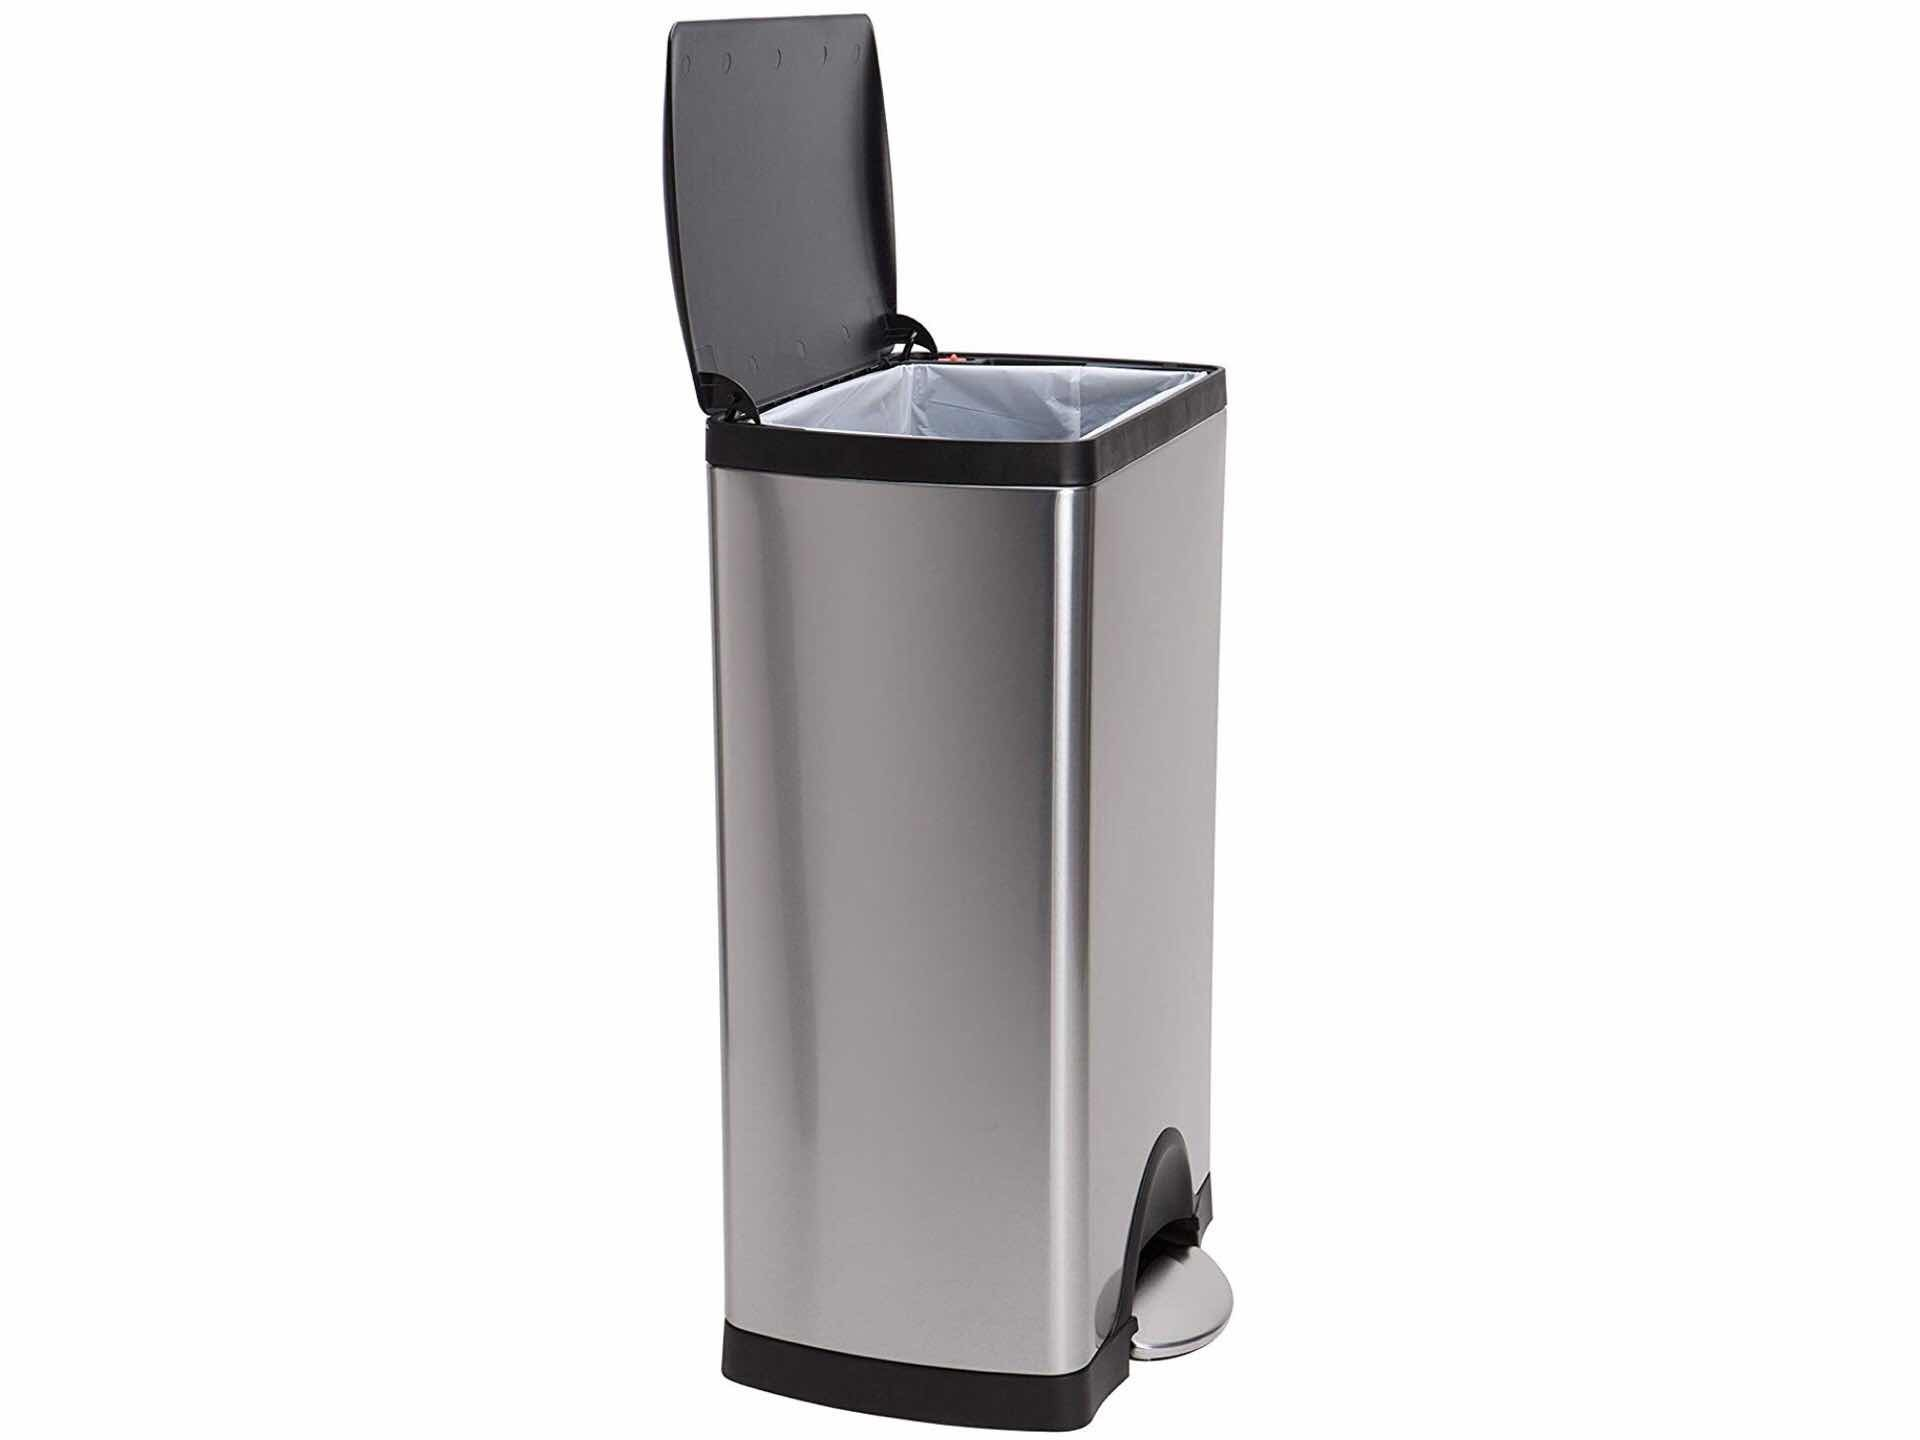 Simplehuman's stainless steel trash can. ($80)